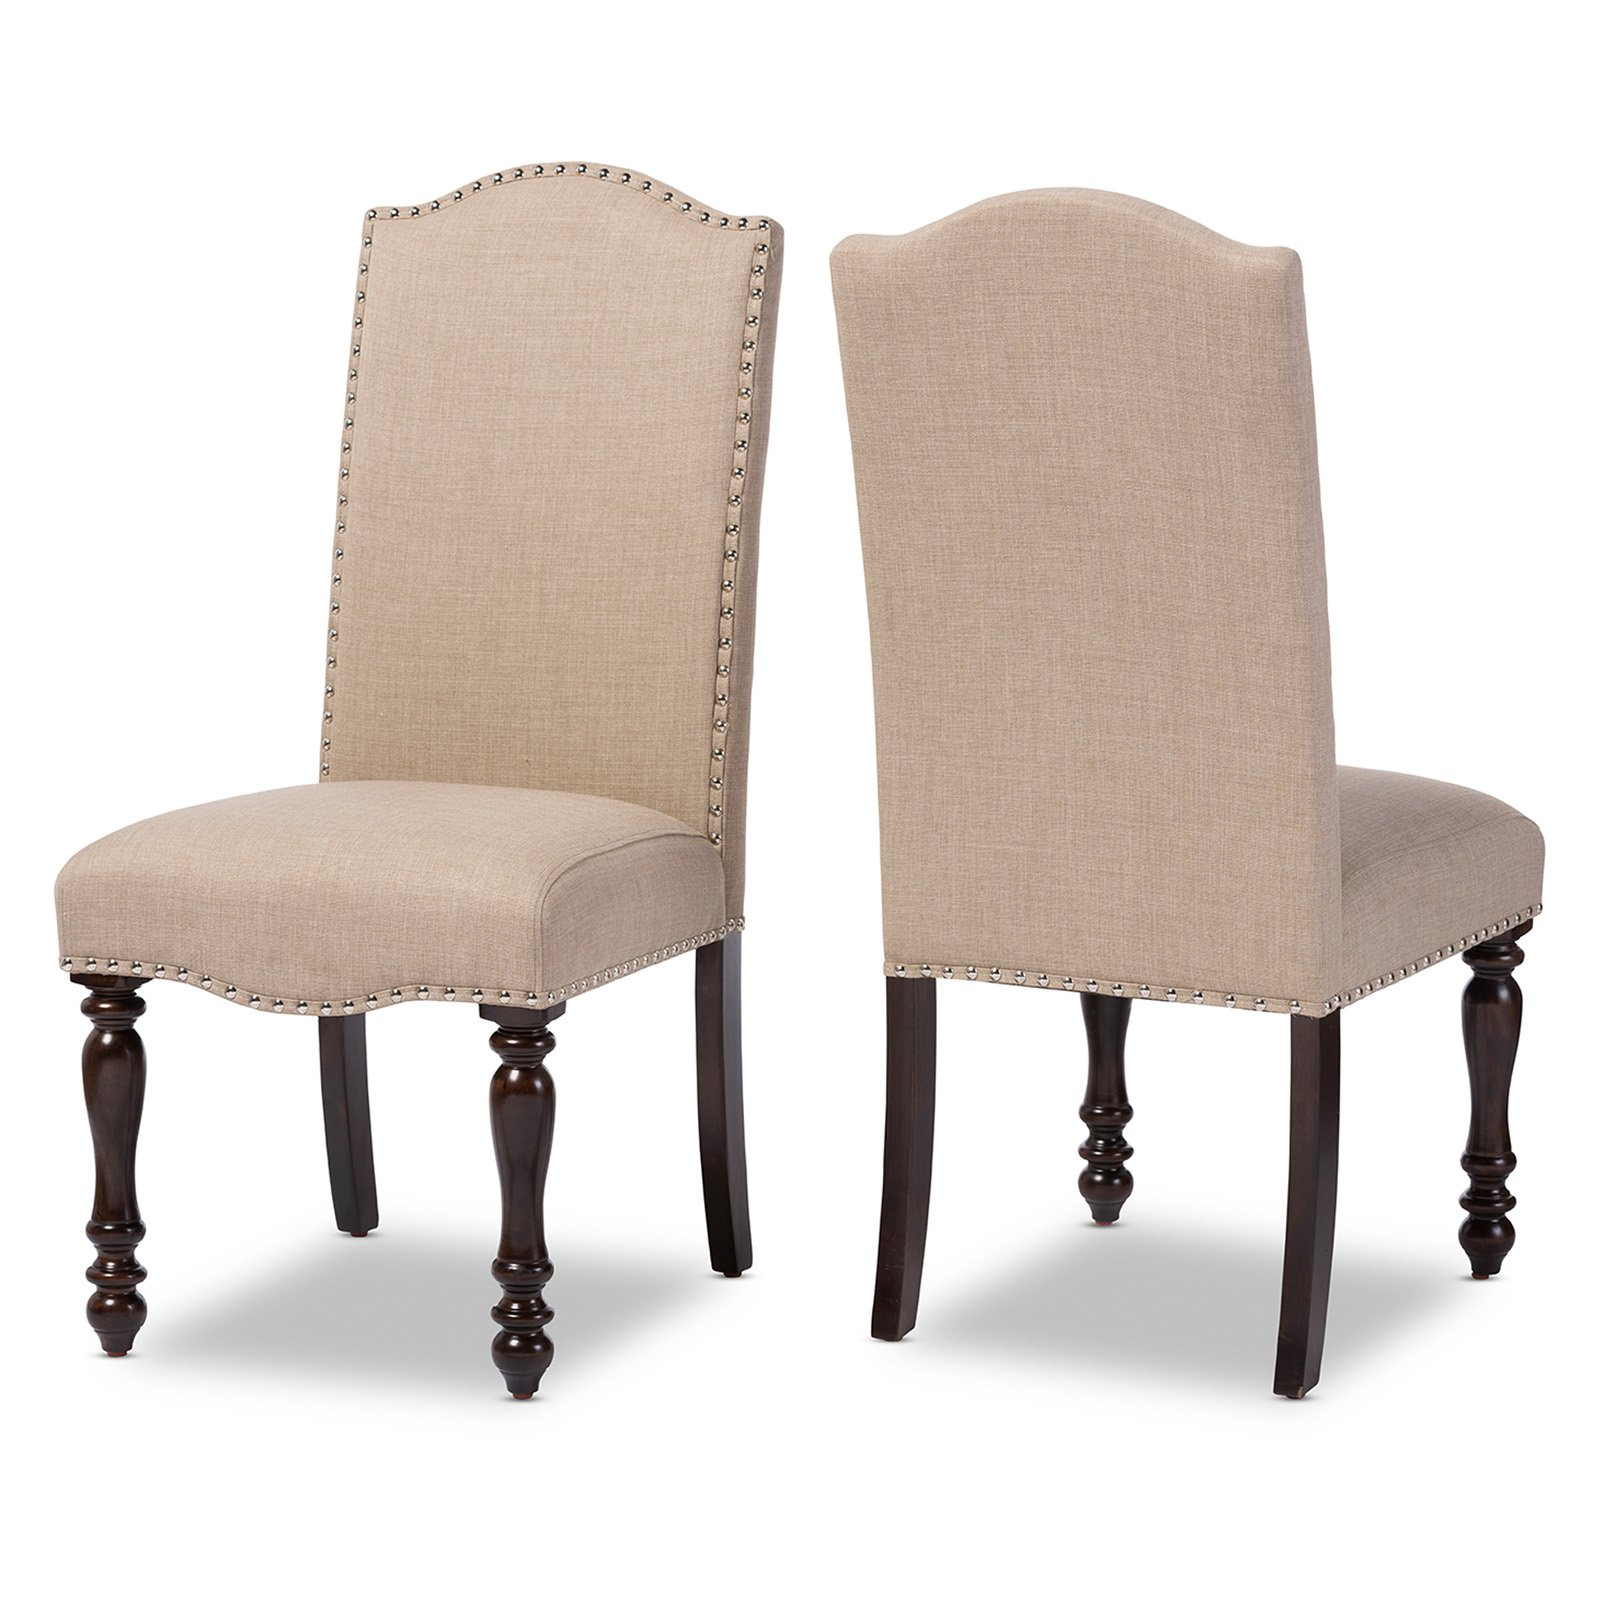 vintage oak dining chairs discontinued thomasville baxton studio zachary chic french brown beige linen fabric upholstered chair set of 2 walmart com